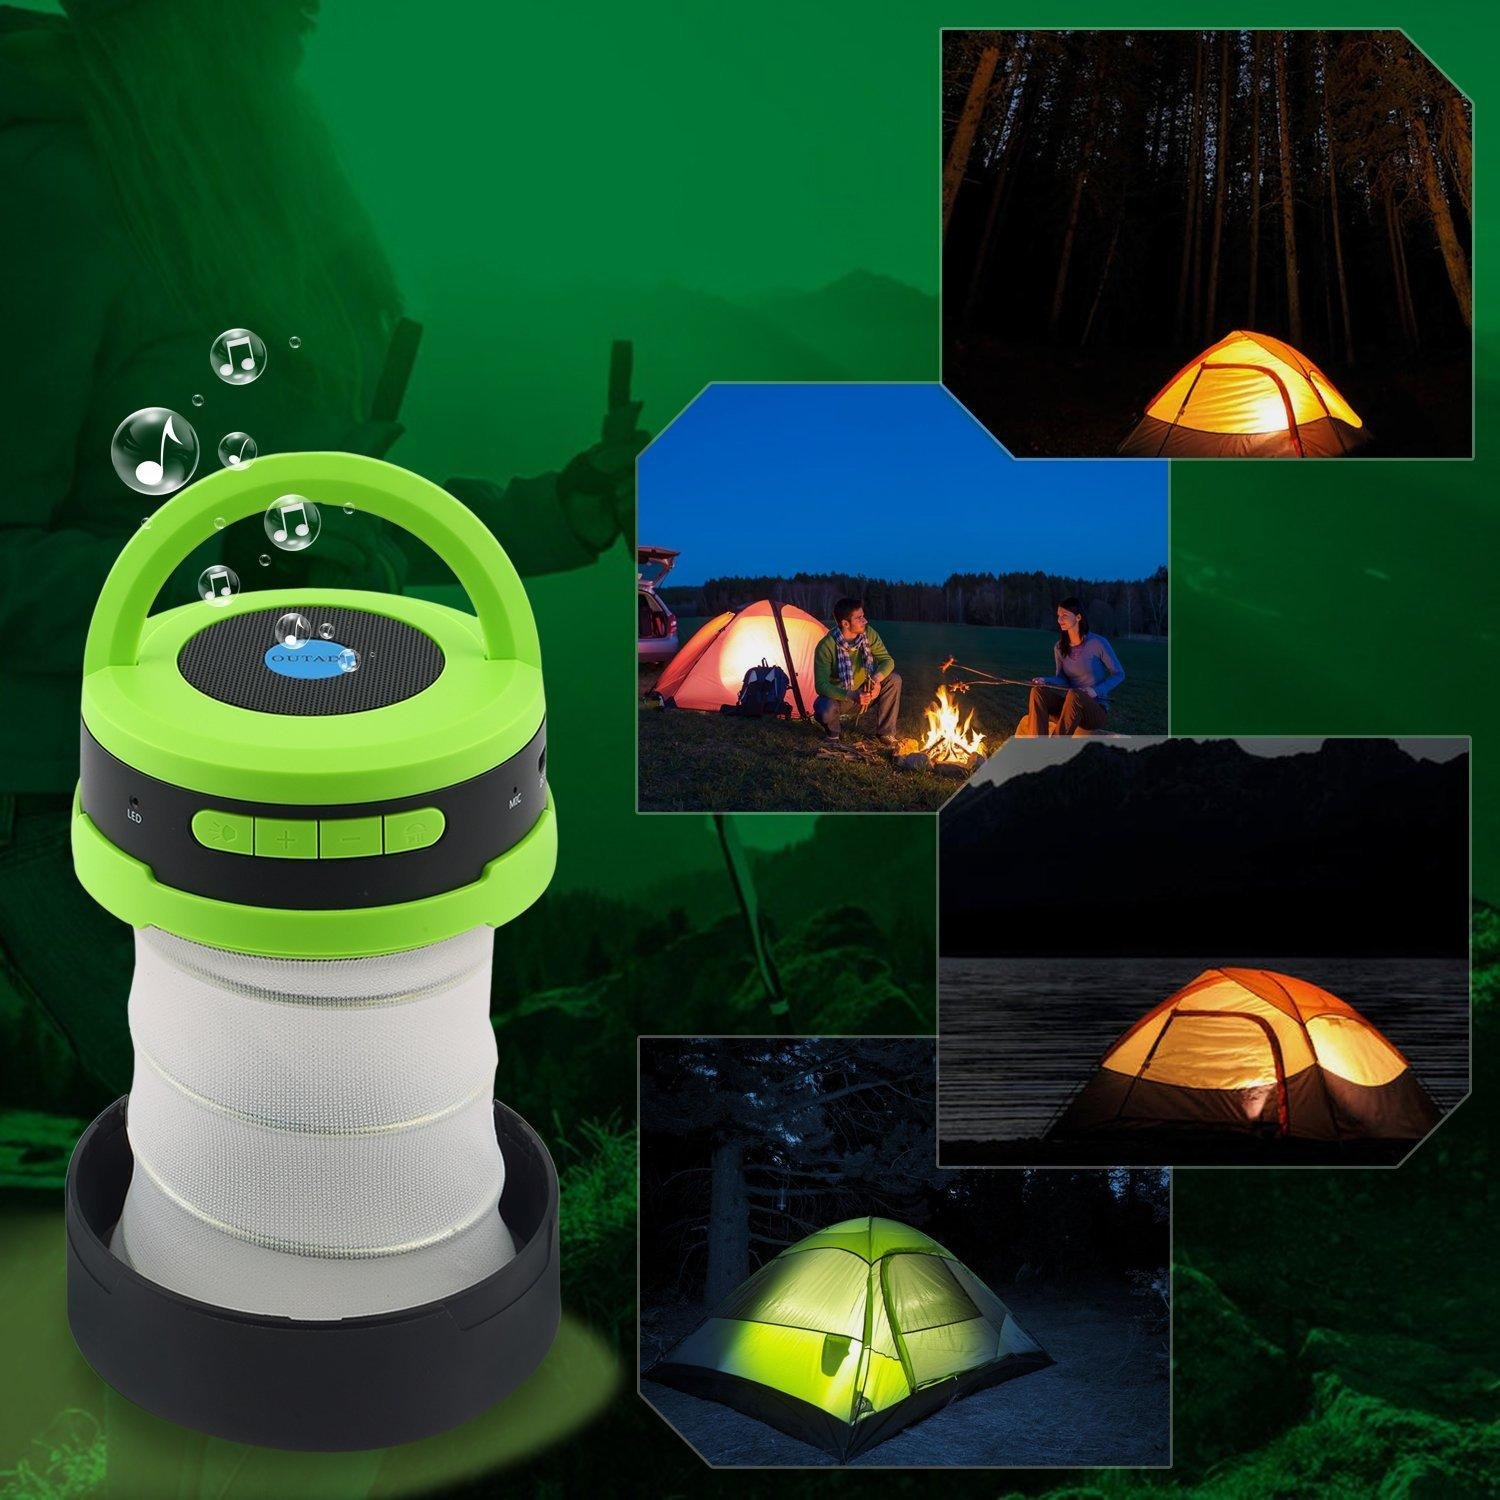 OUTAD 2 in 1 Outdoor Wireless Bluetooth Speaker and LED Lamp with Built-In Mic